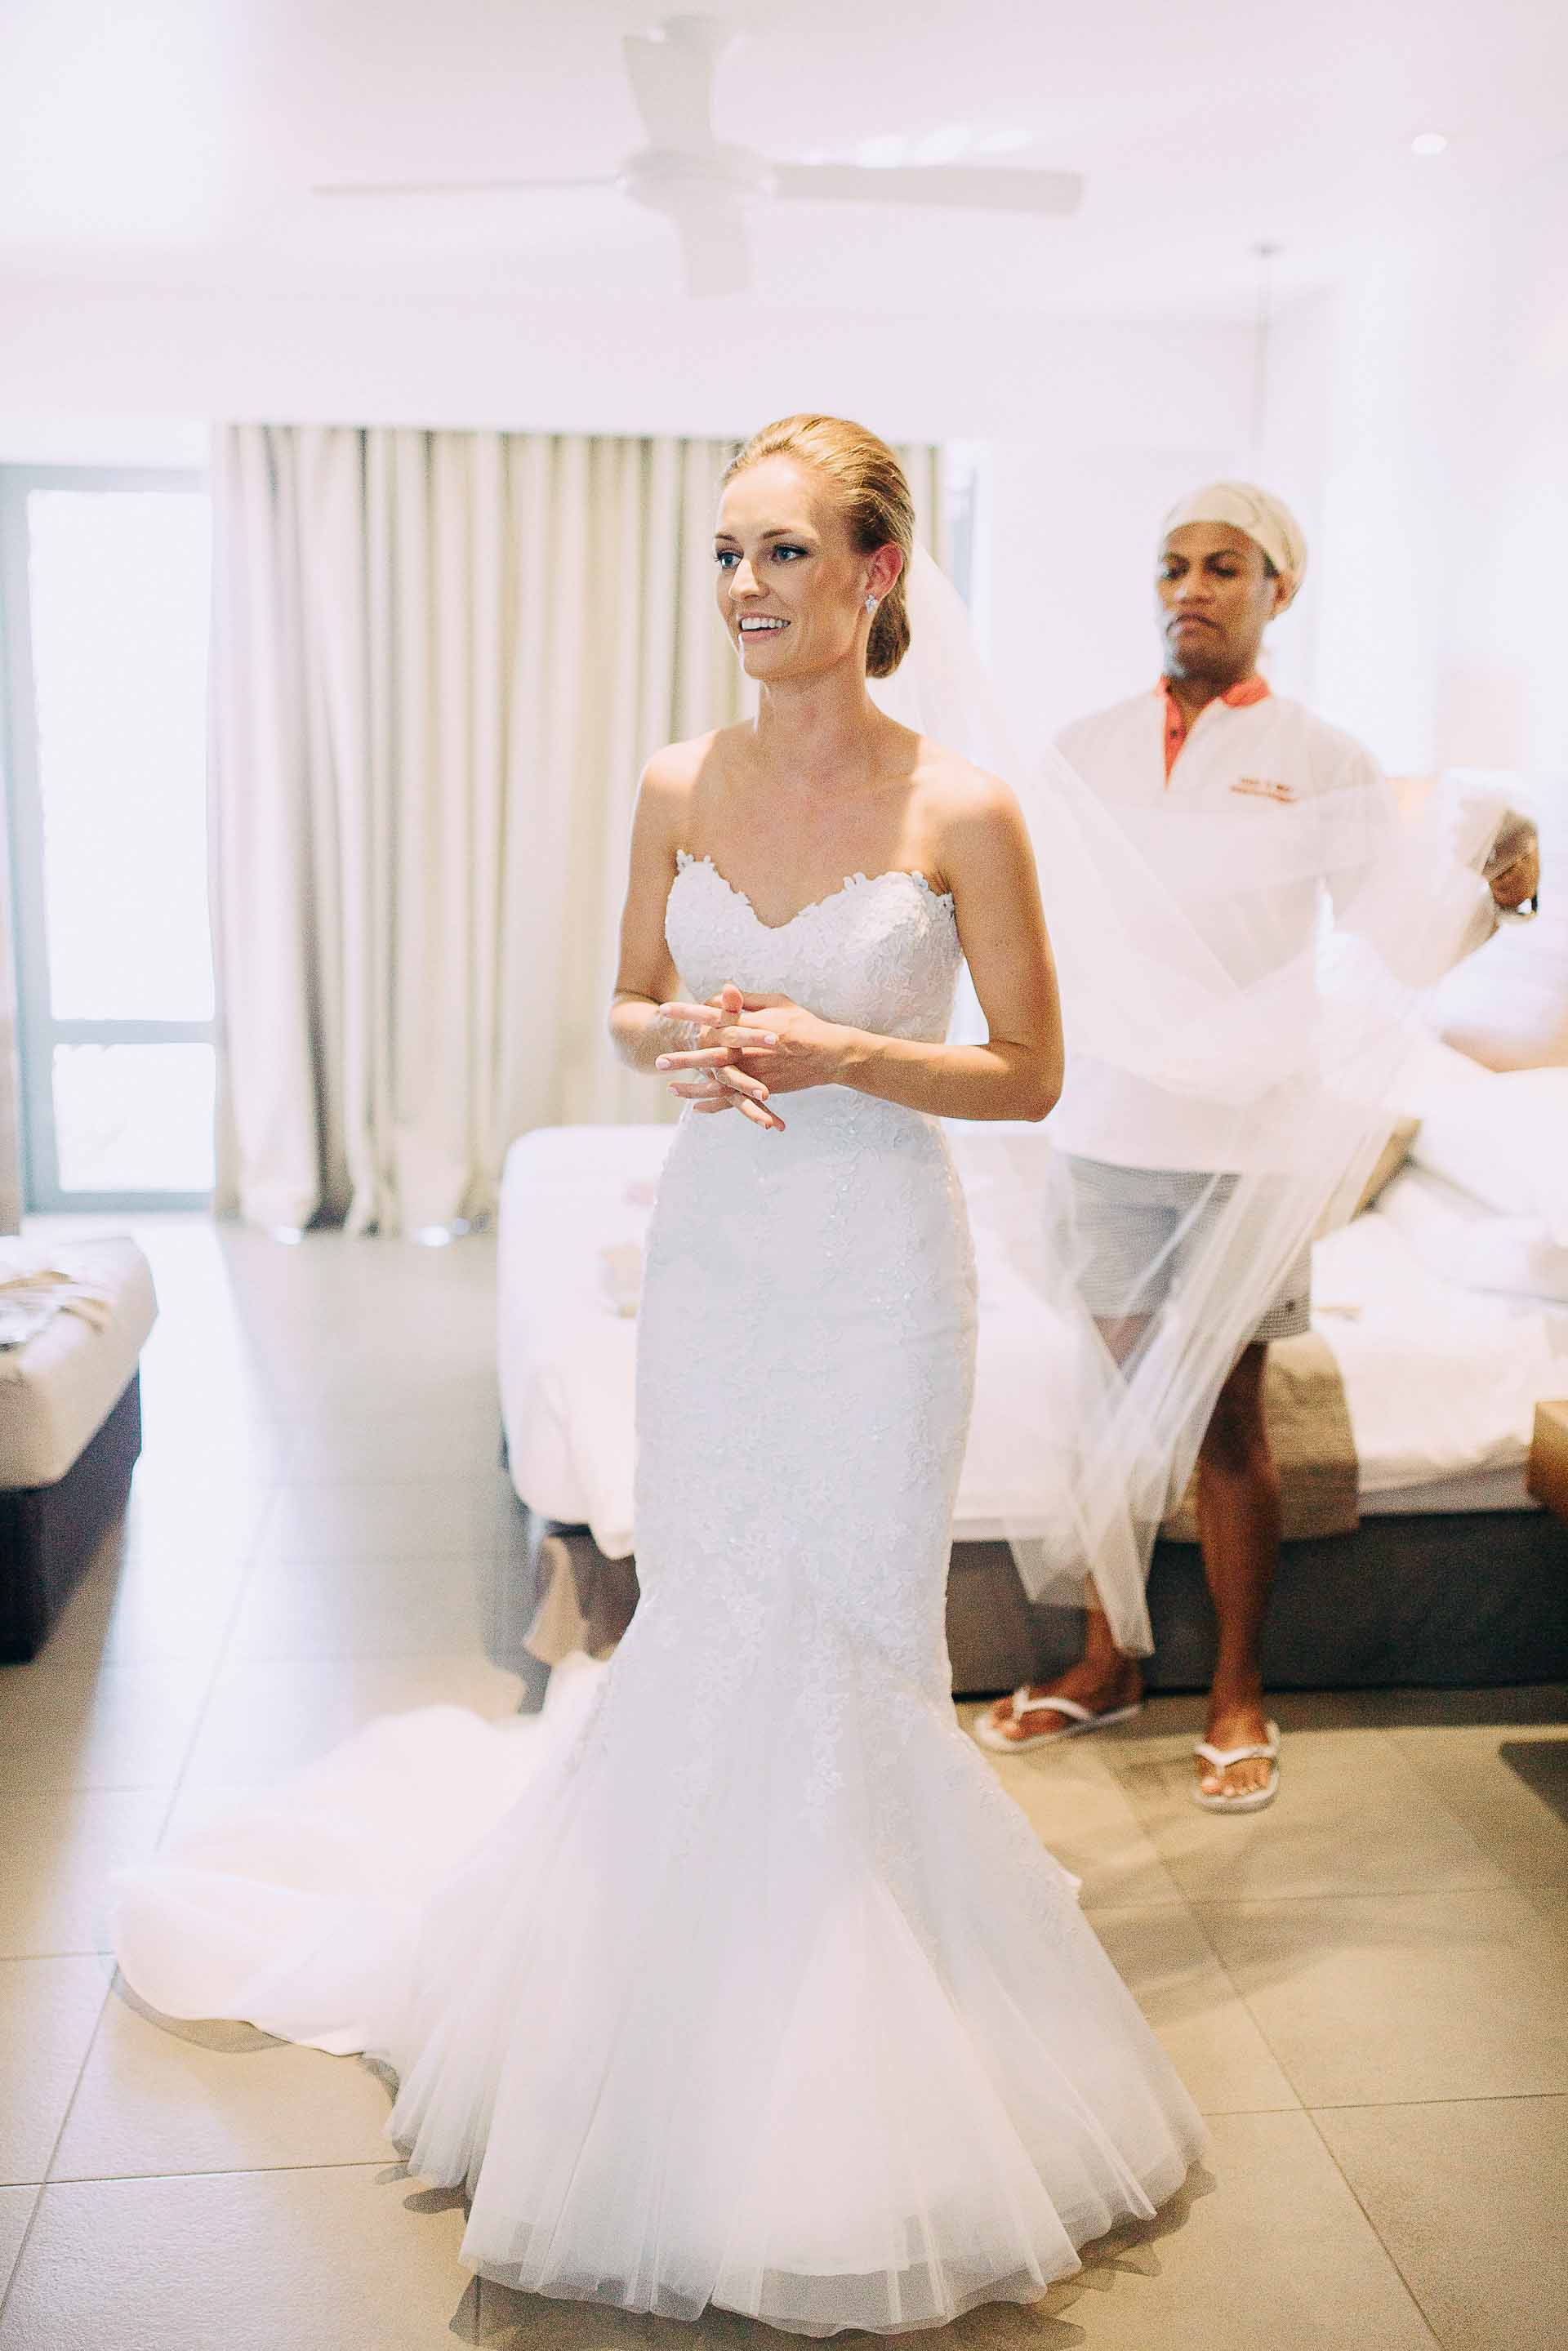 Makeup artist helps the Bride with her beautiful long veil